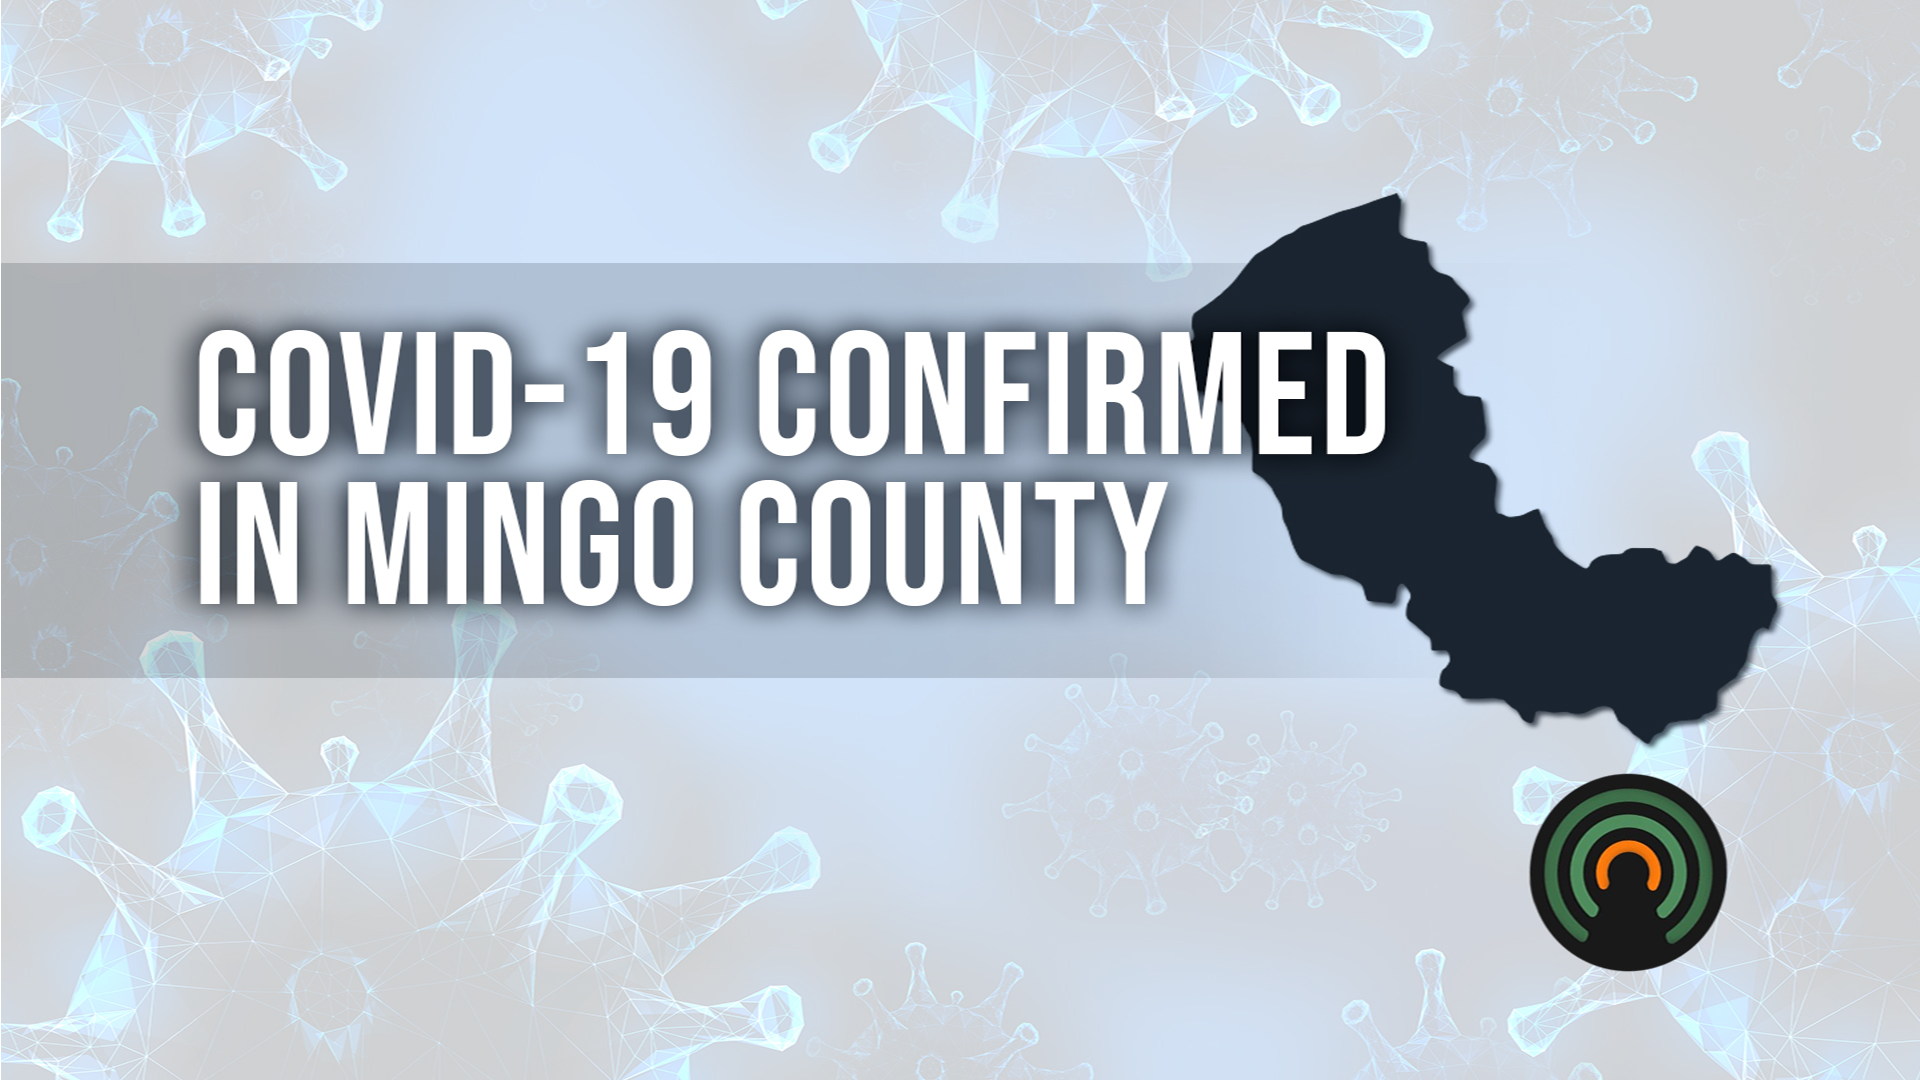 Six new COVID-19 cases confirmed in Mingo County